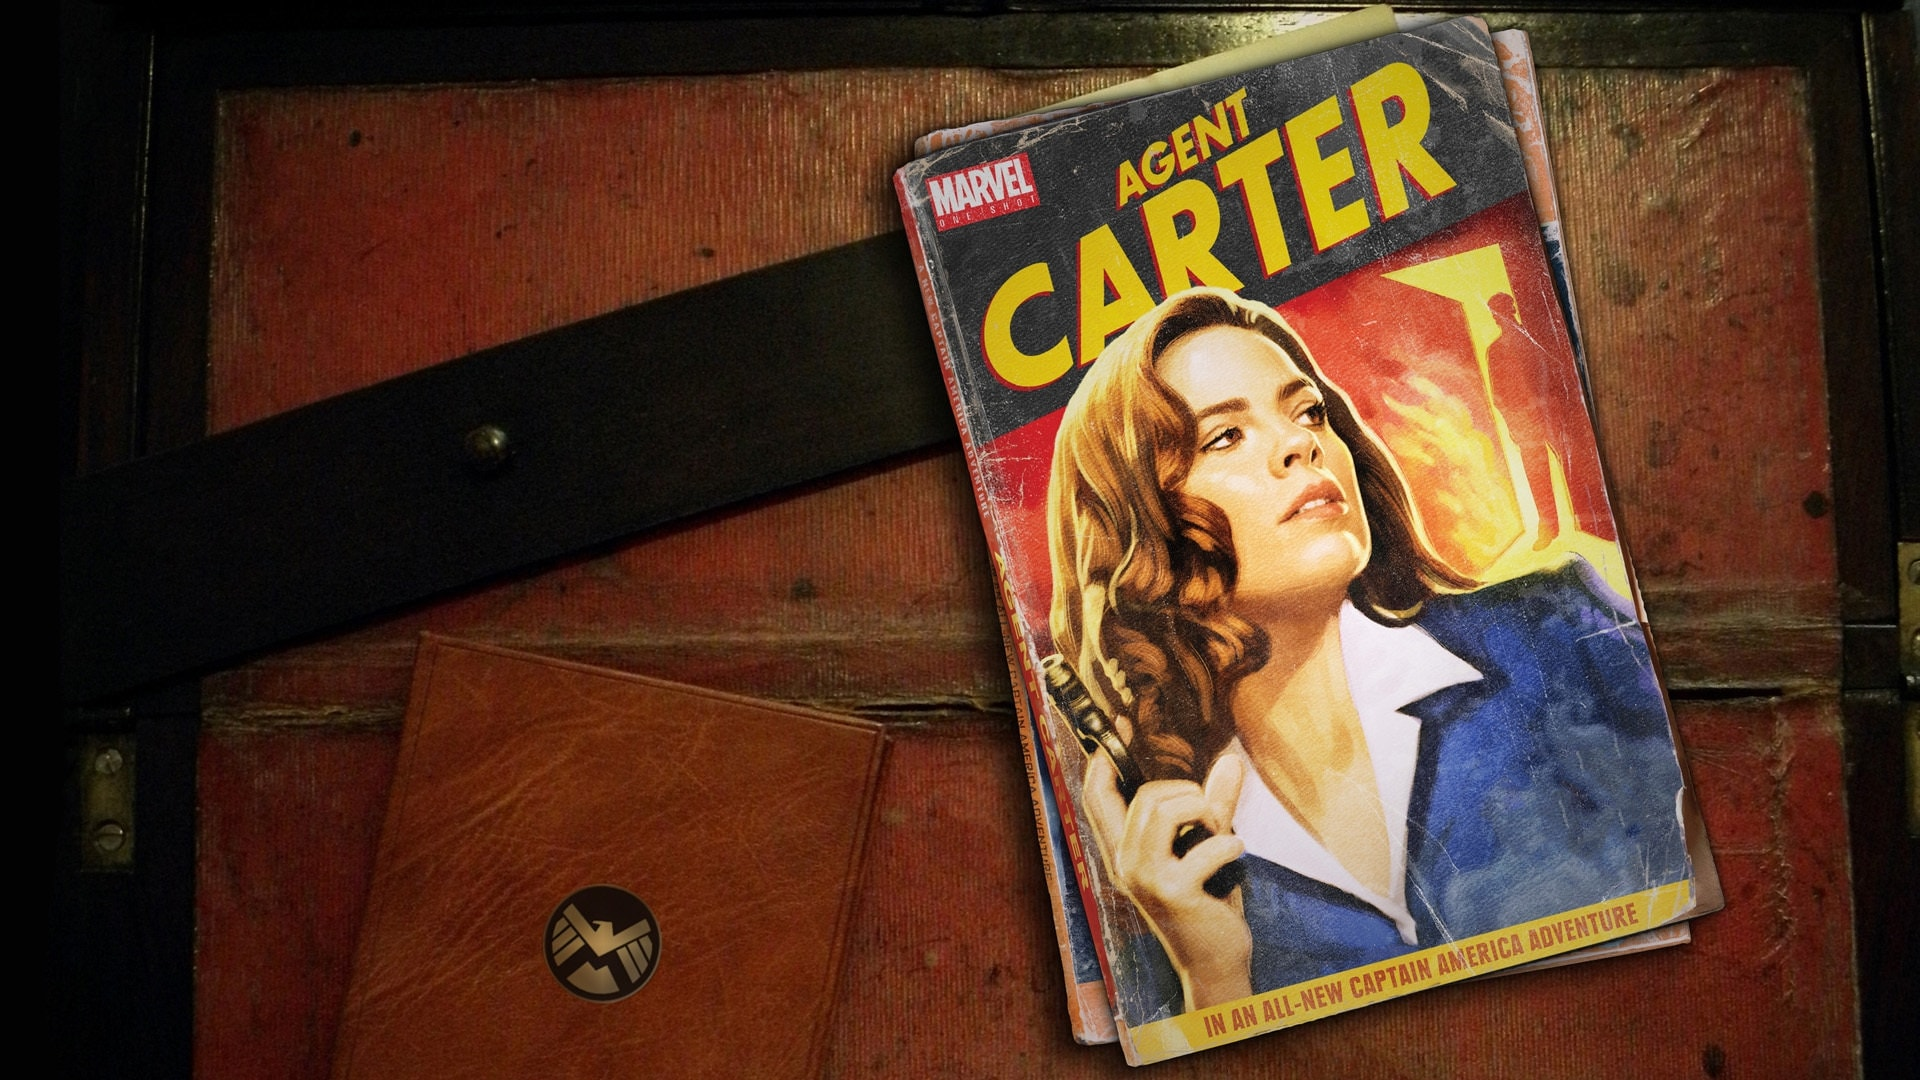 Smart Girl Hd Wallpaper Agent Carter Hd Desktop Wallpapers 7wallpapers Net